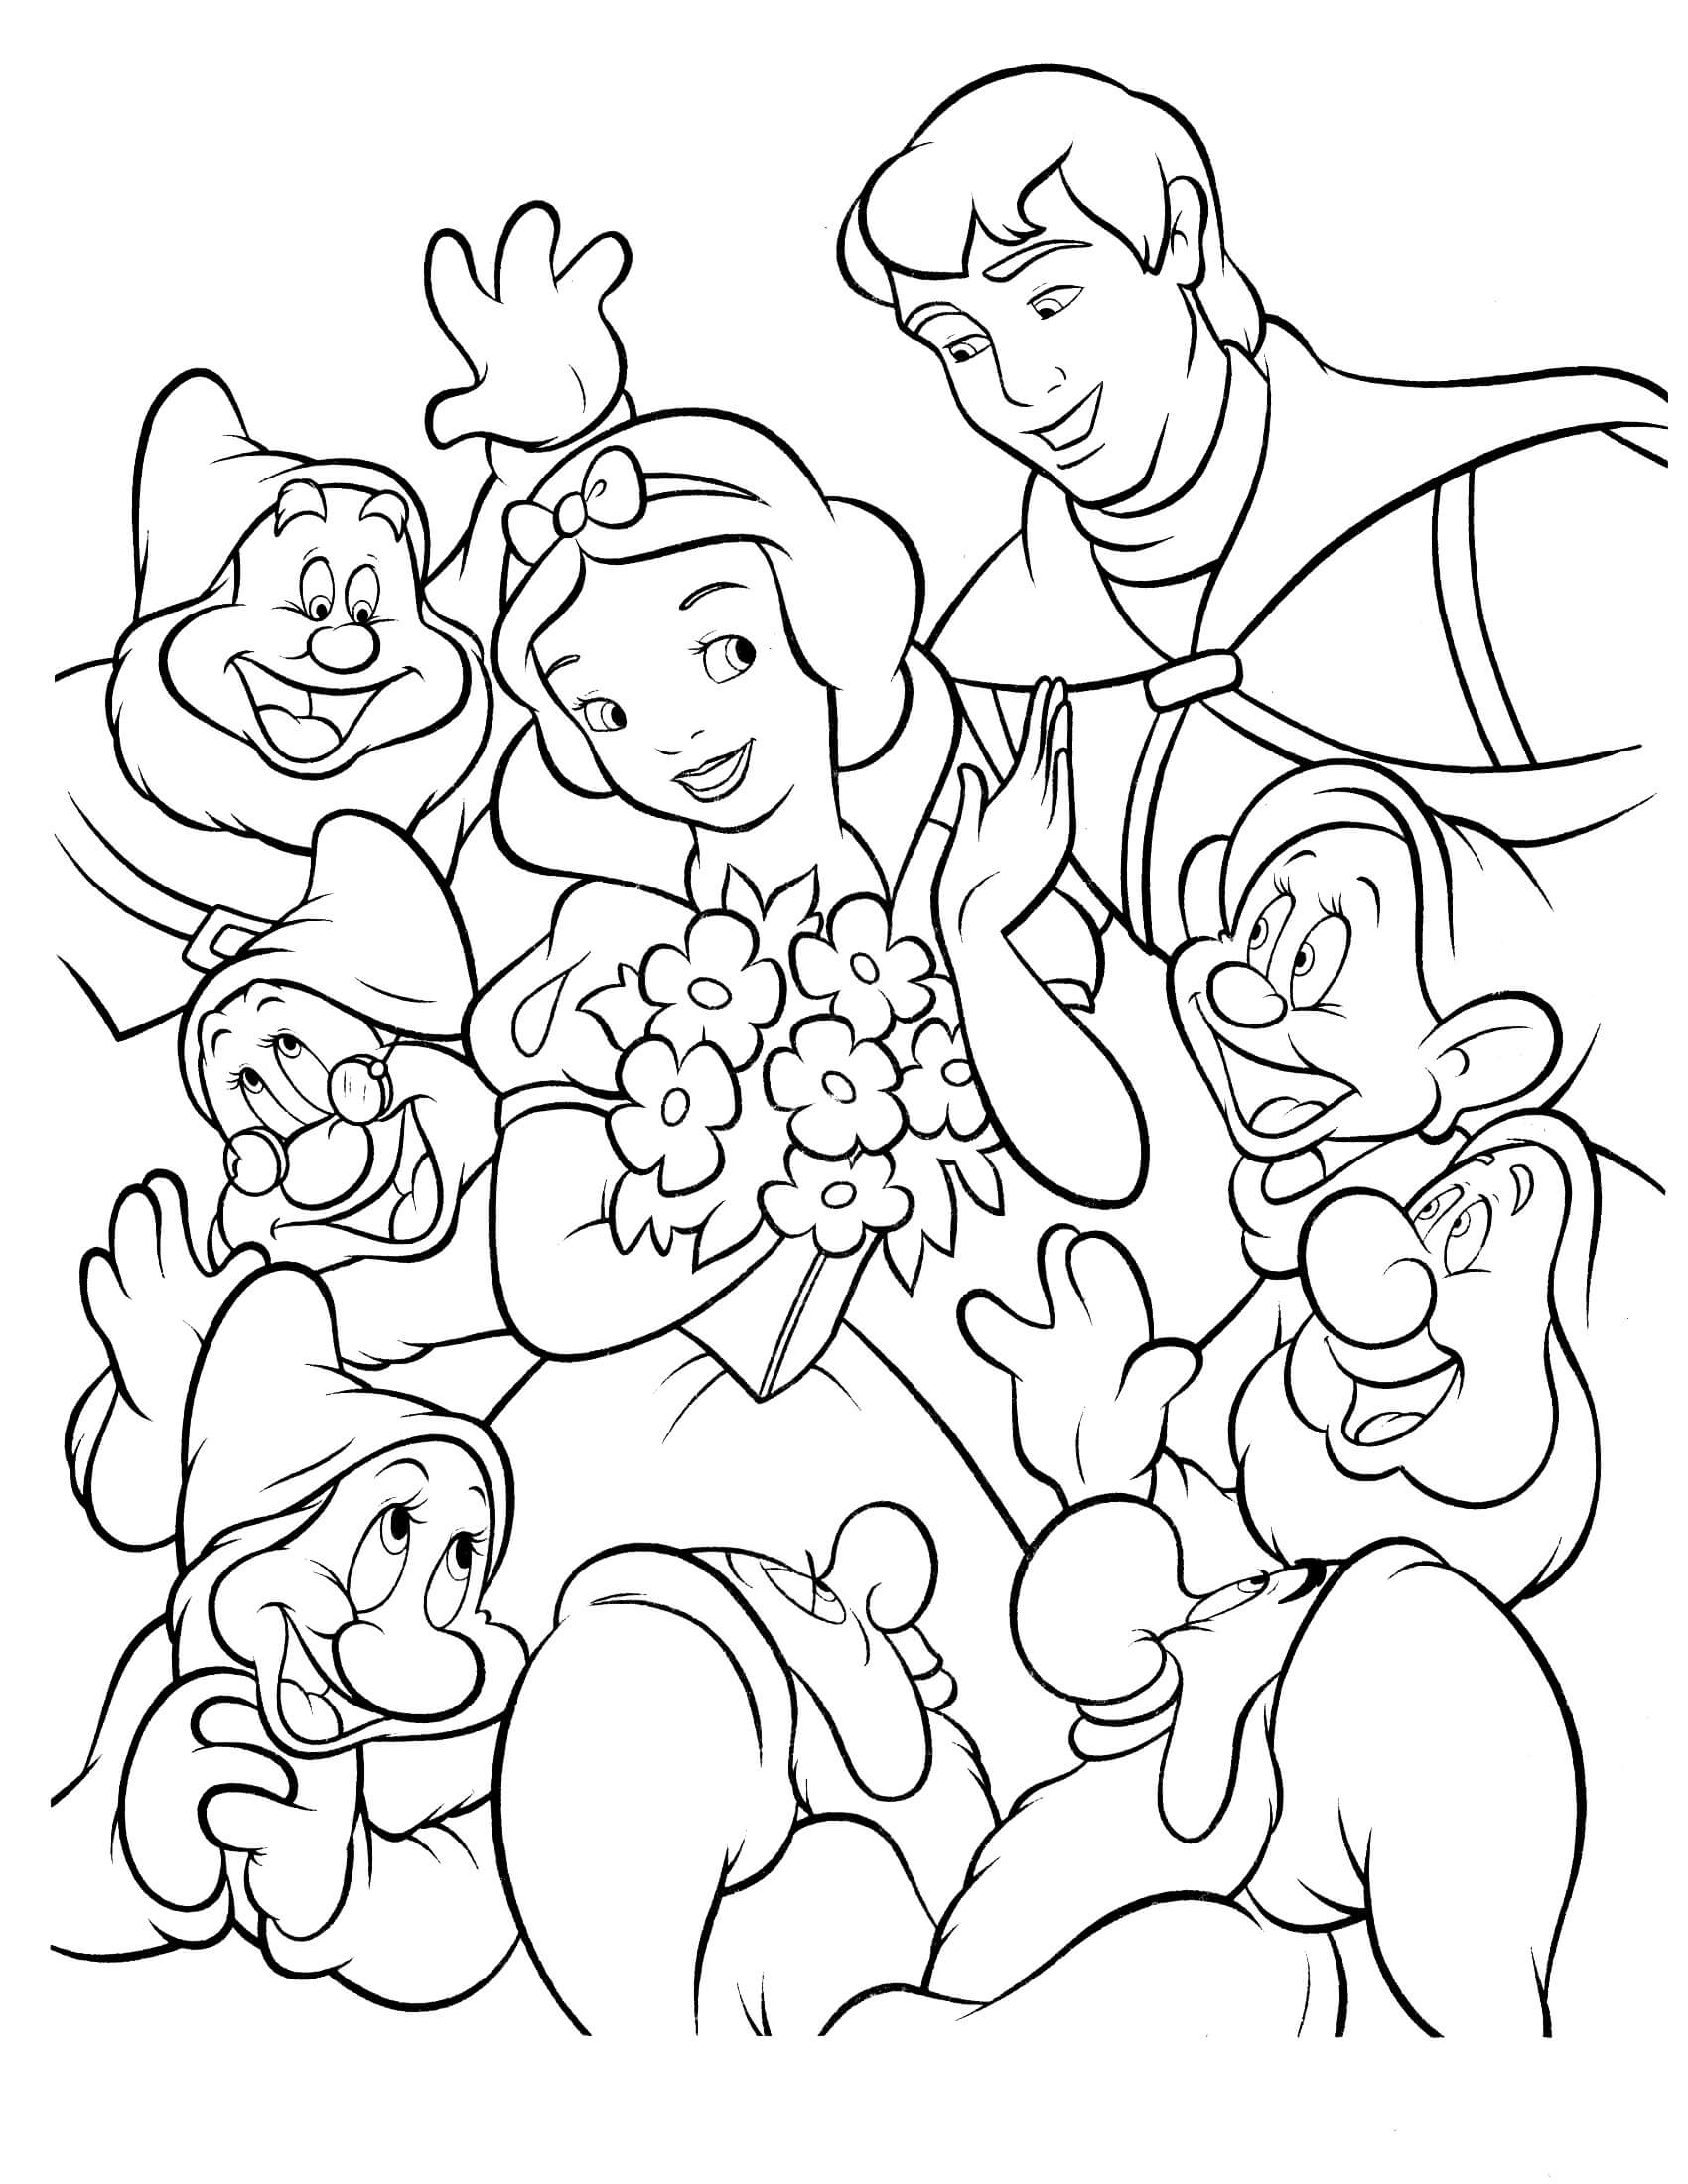 Disney Coloring Pages for Adults - Snow White 16 – Coloringcolor